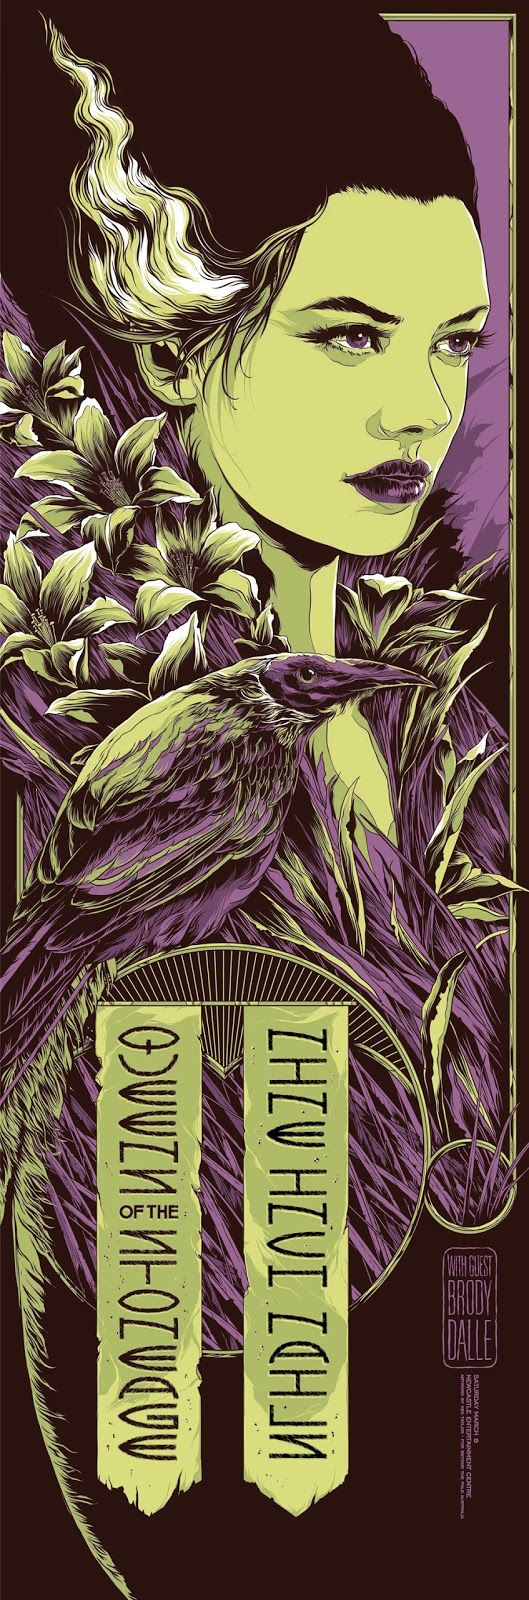 Ken Taylor Queens-of-the-Stone-Age-Nine-Inch-Nails-NEWCASTLE-Poster